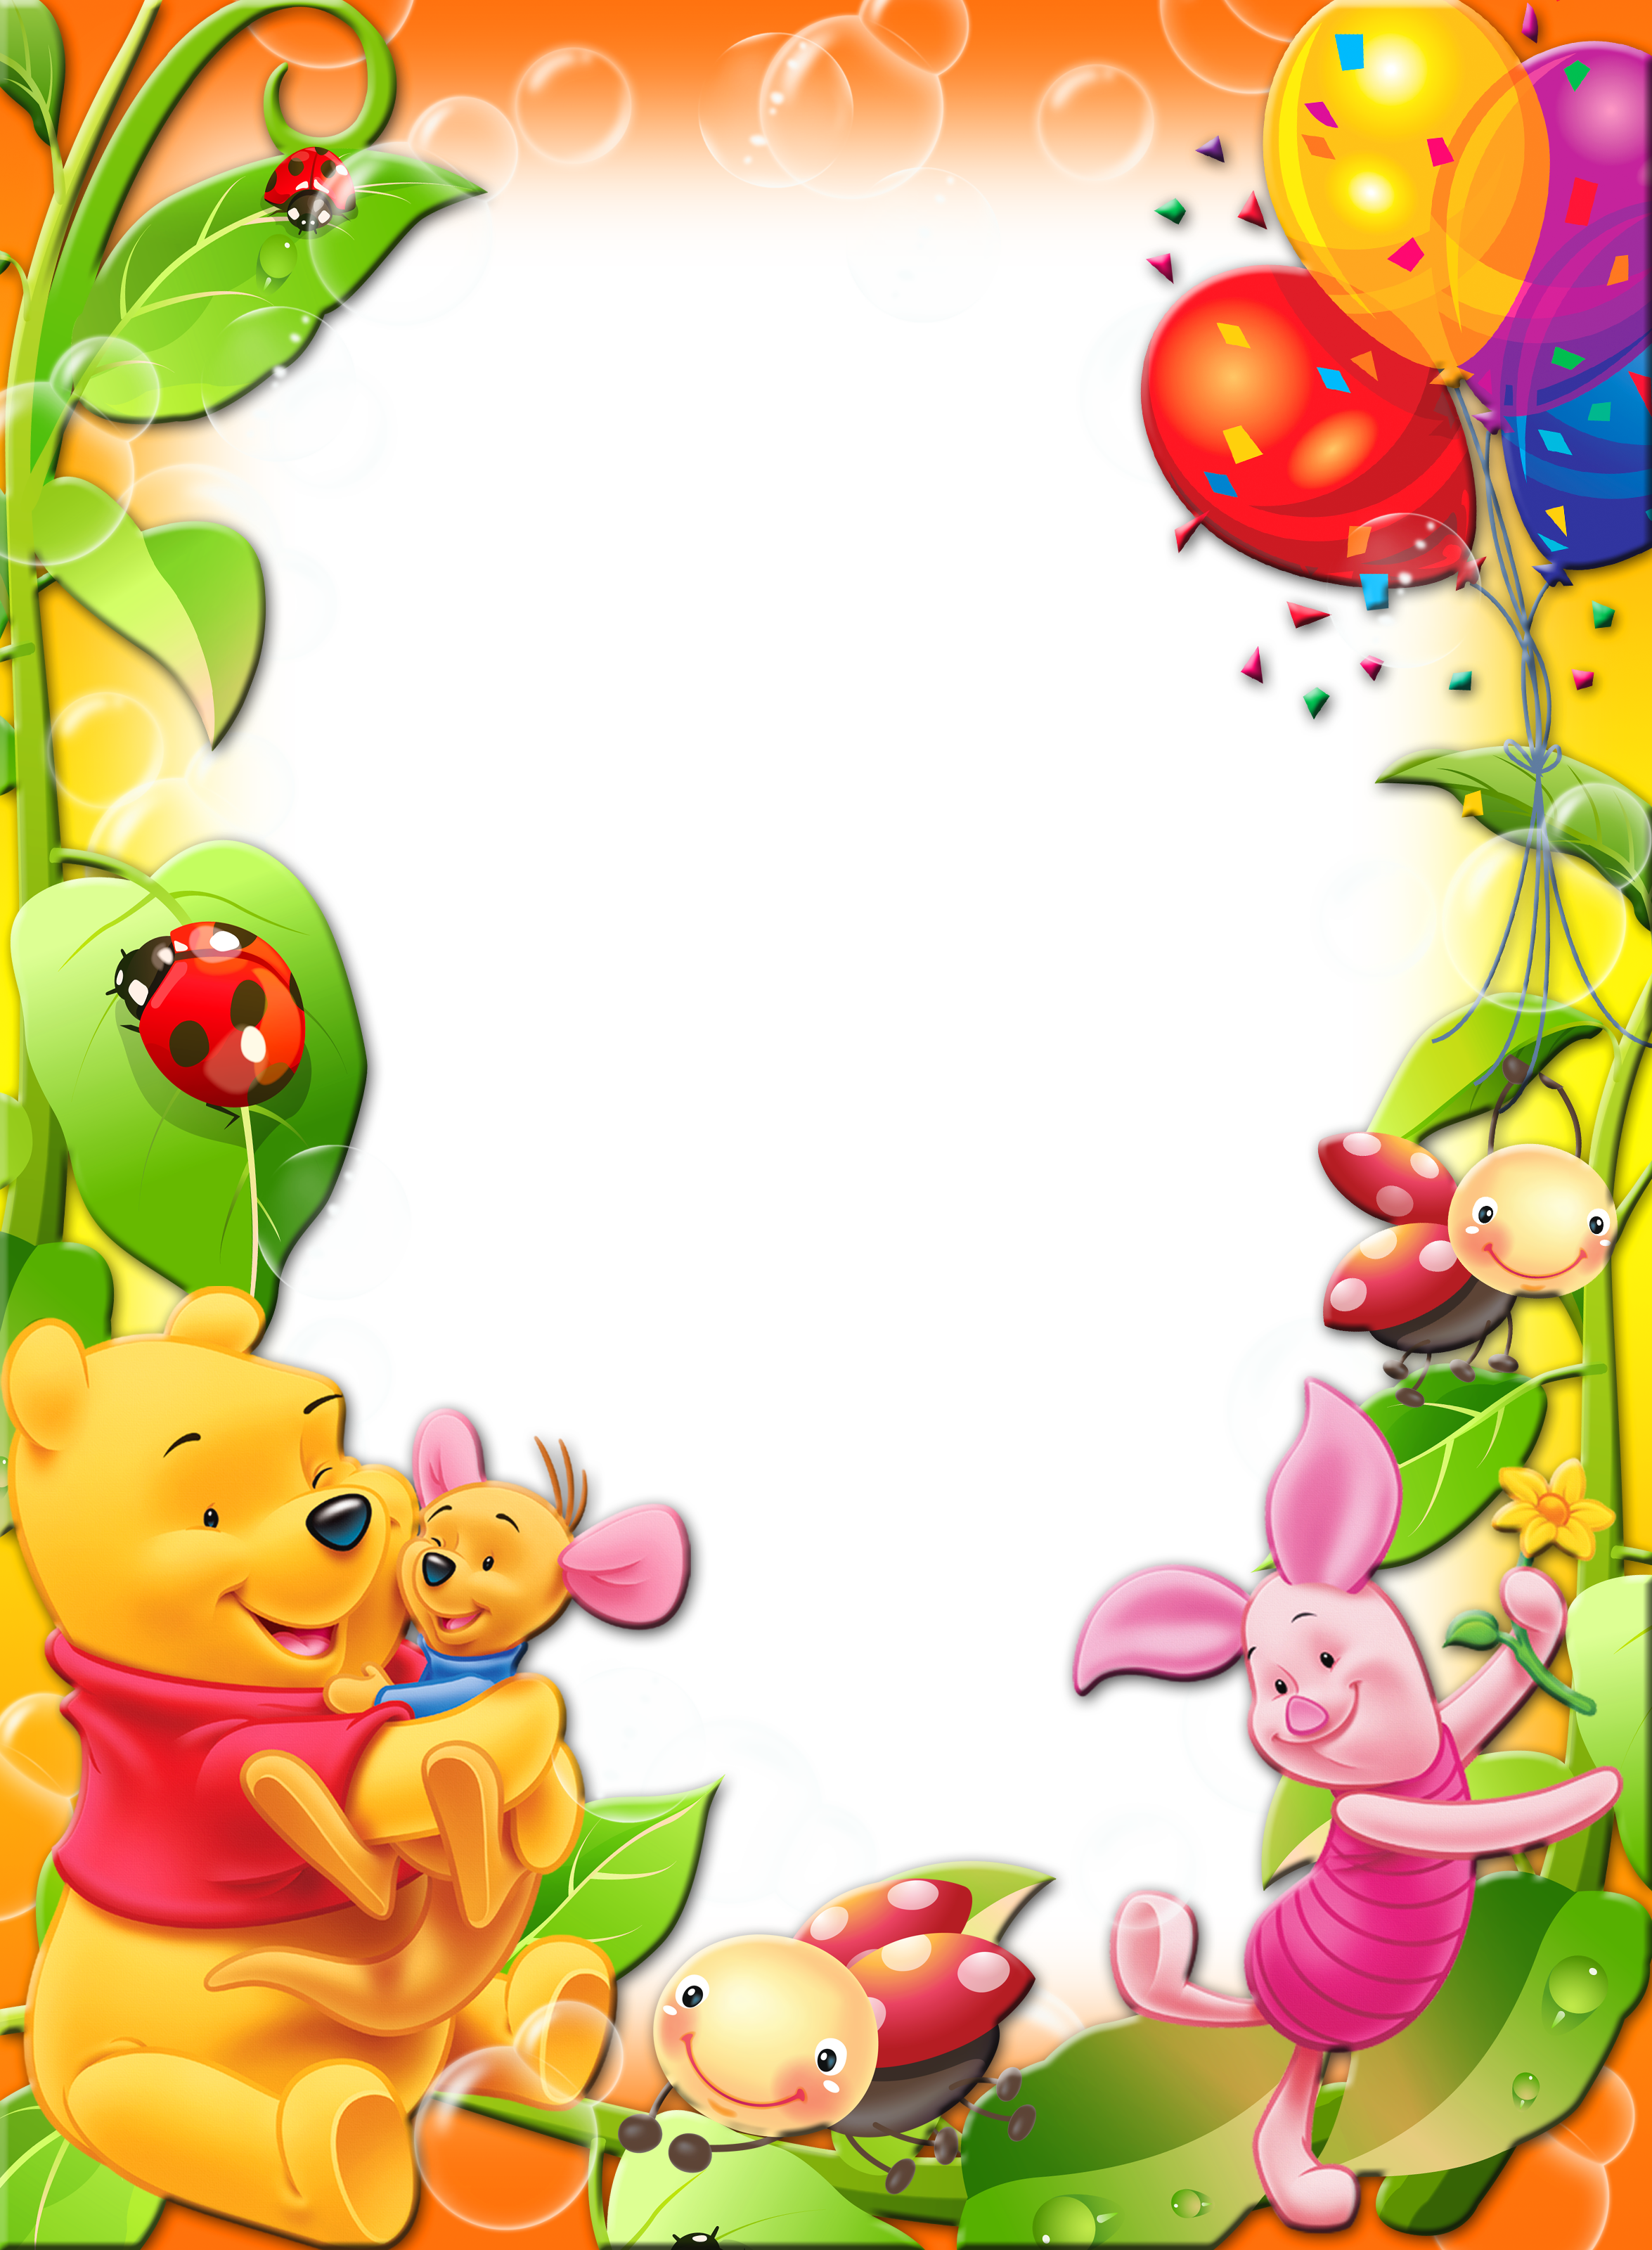 Winnie The Pooh With Balloons Kids Transparent PNG Photo Frame